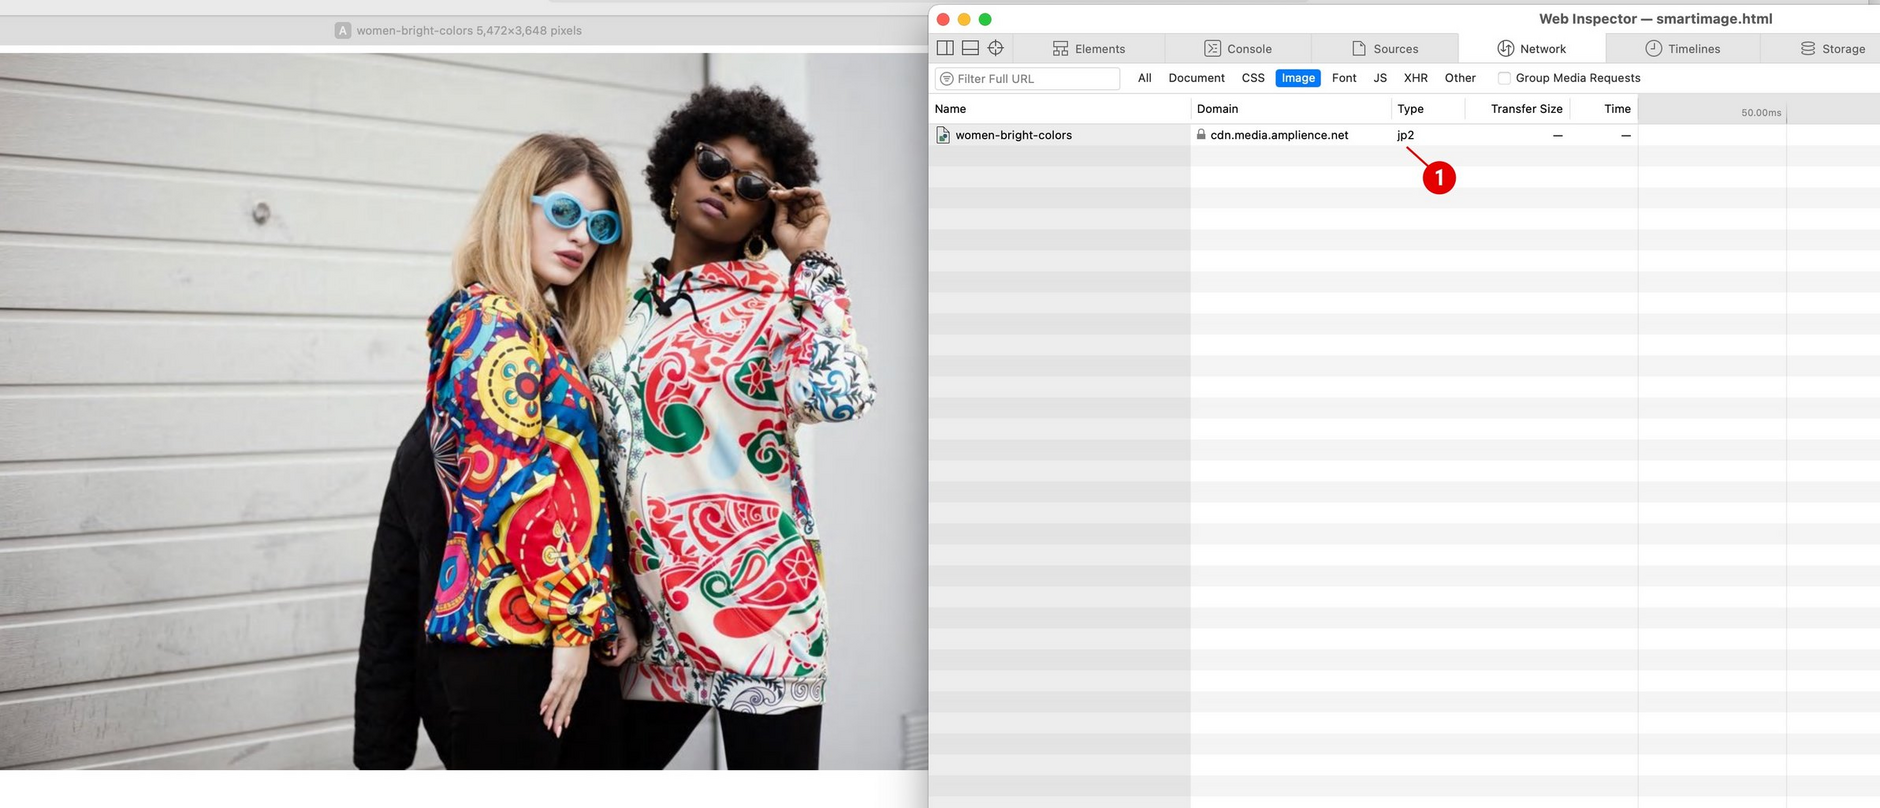 When opened in Apple Safari, the image is returned in jp2 format.